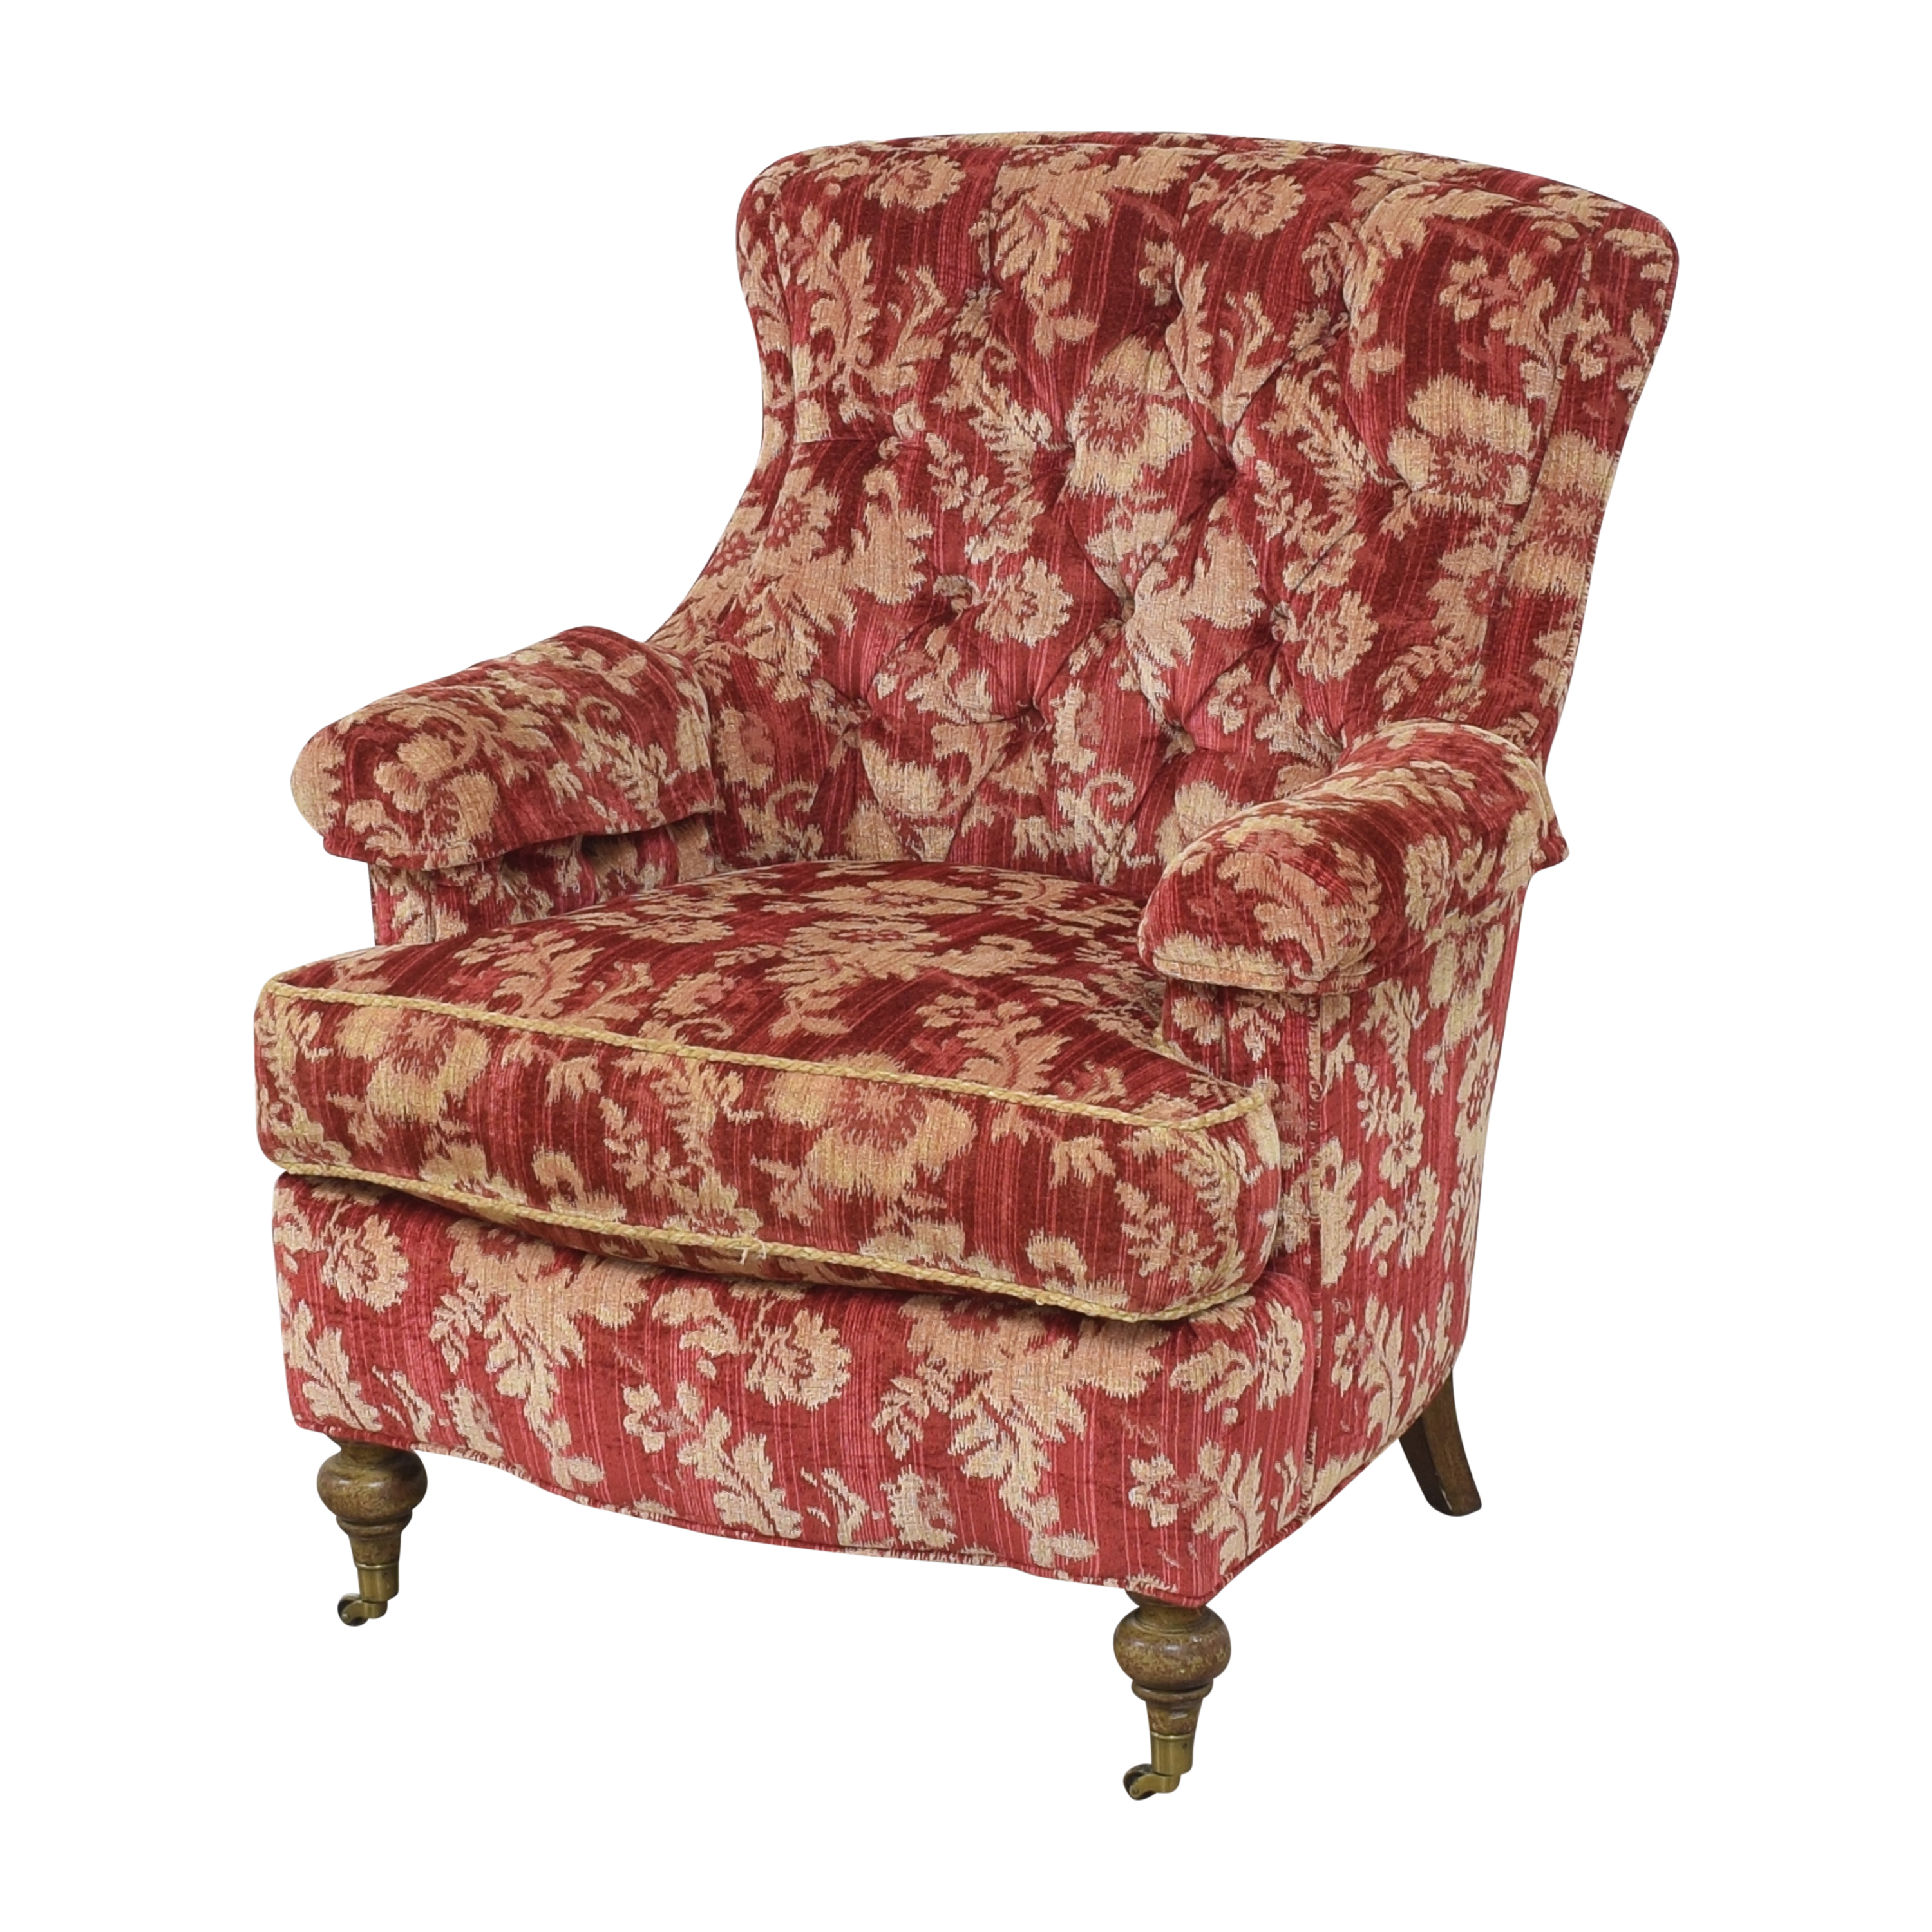 Drexel Heritage Drexel Heritage Custom Wingback Accent Chair used